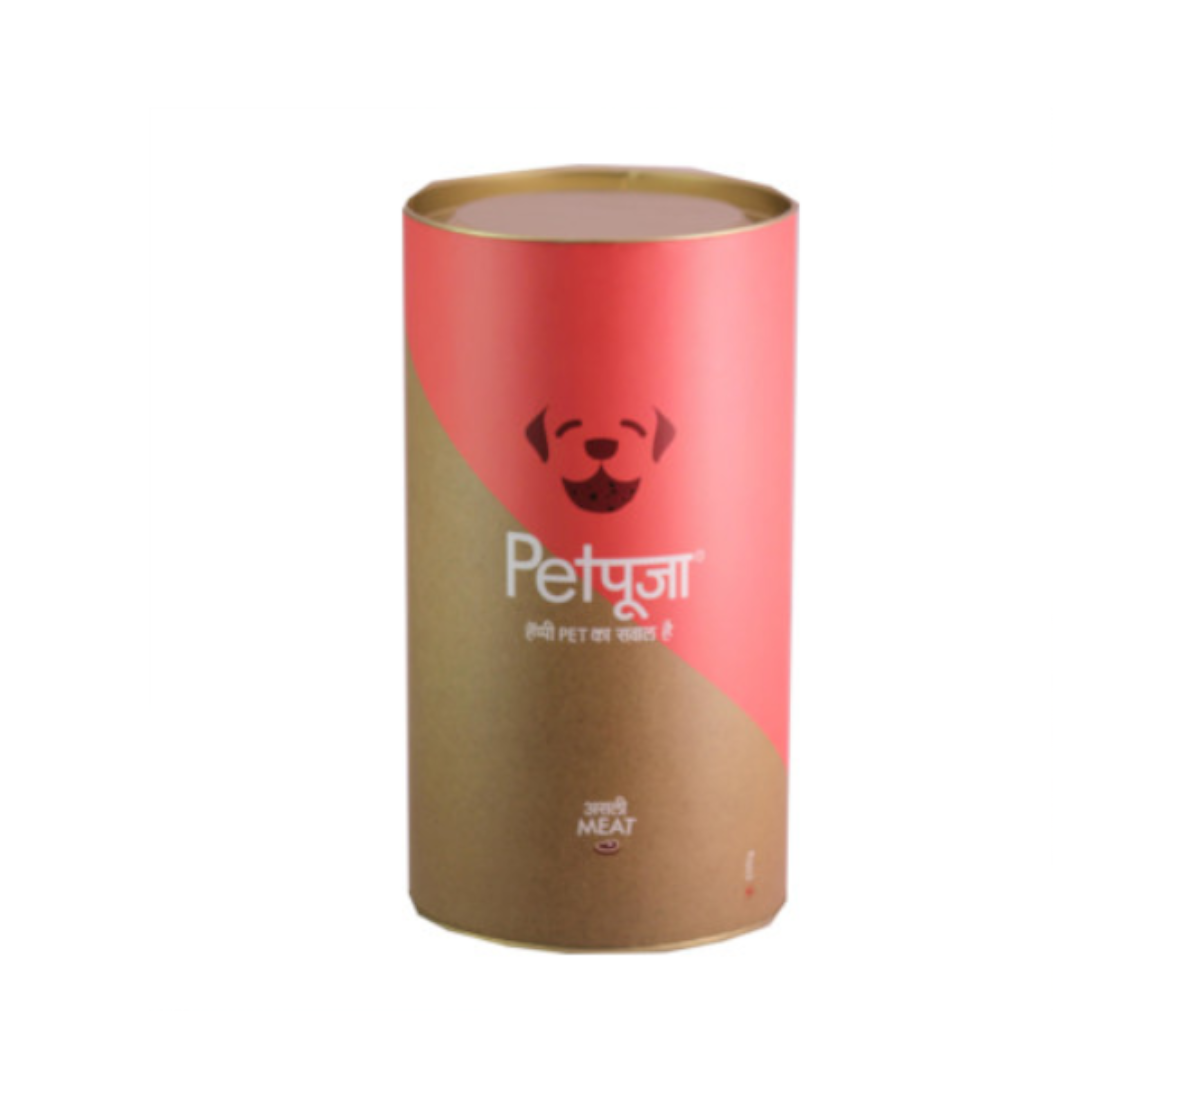 PetPooja Meat Biscuits - 500 gm